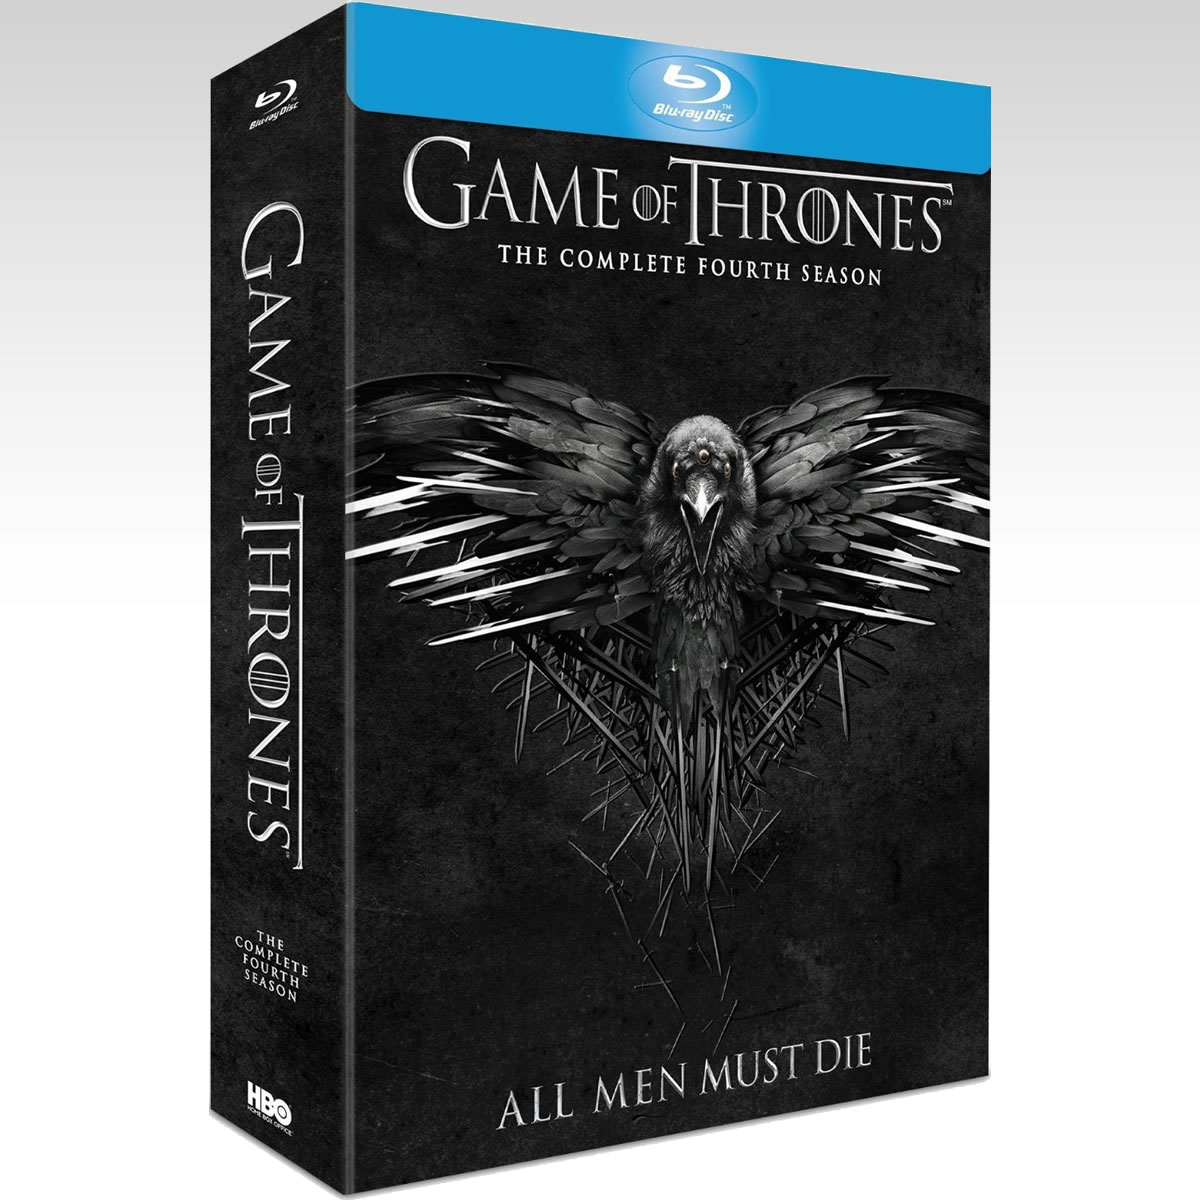 GAME OF THRONES: THE COMPLETE 4rd SEASON - �������� ��� ���������: 4� �������� [��������] (4 BLU-RAYs)